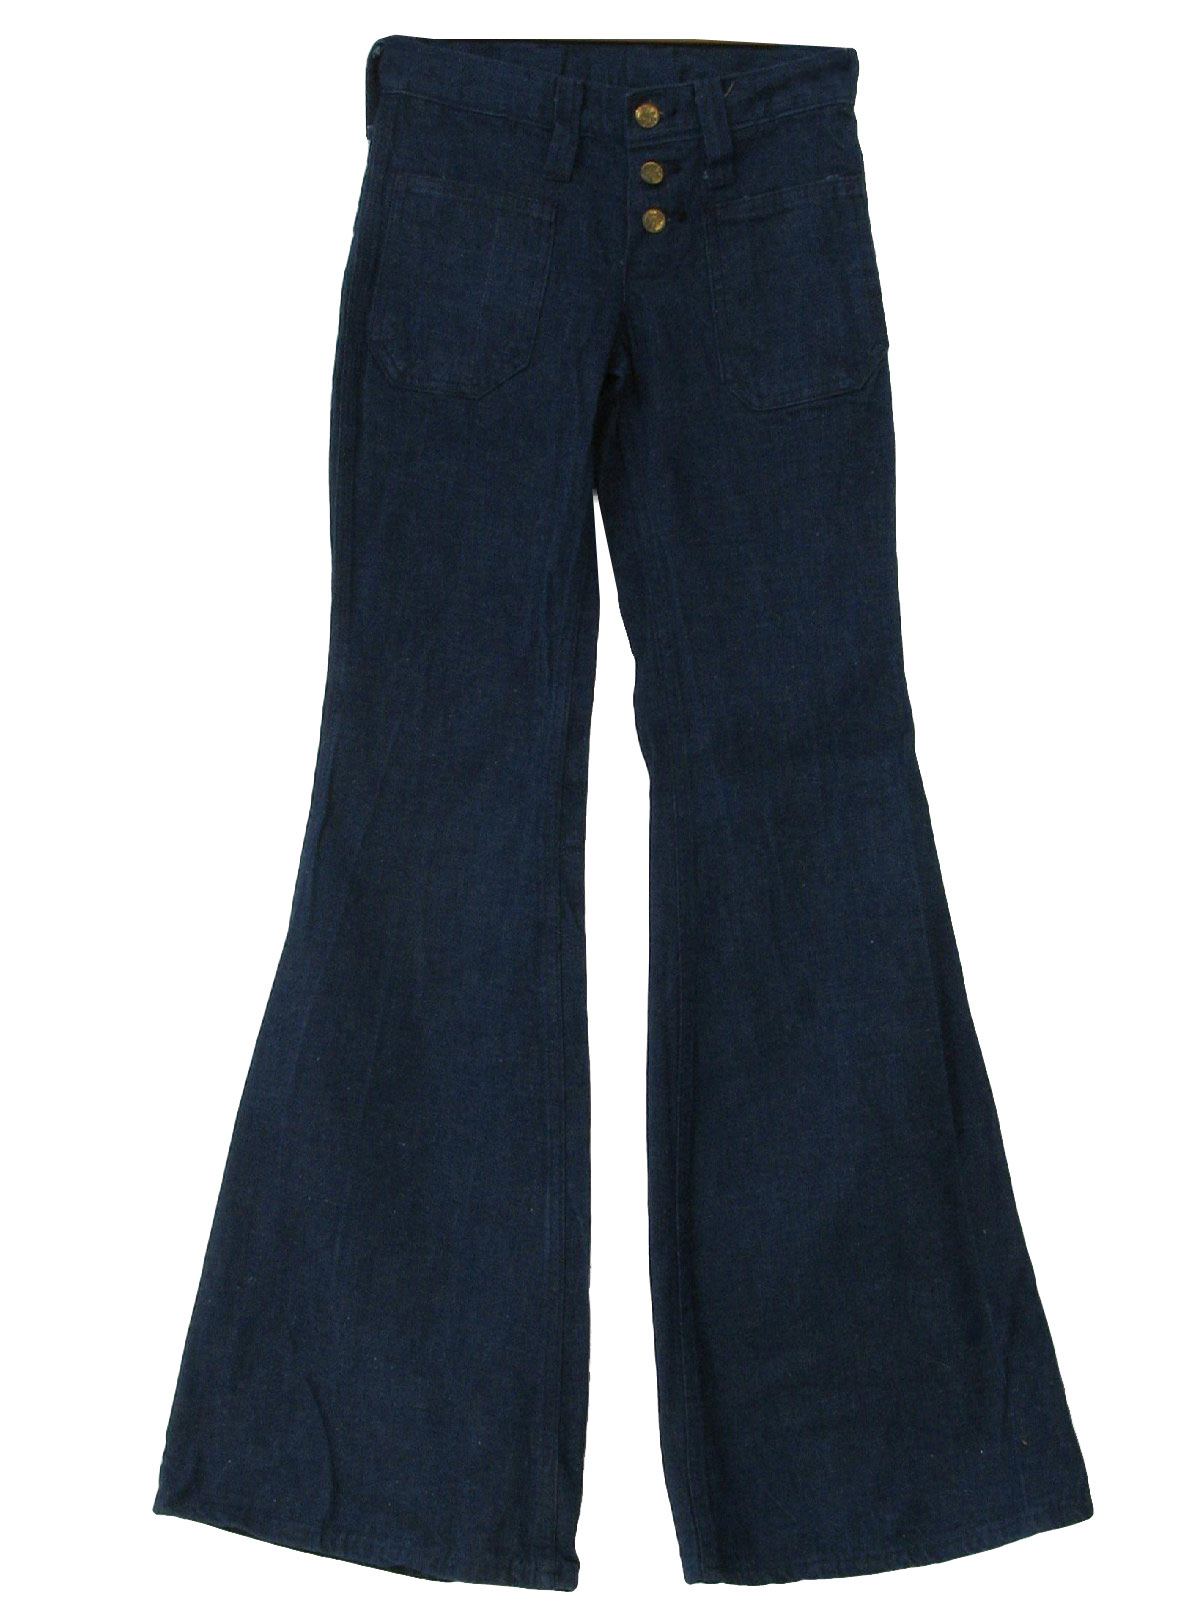 Bell bottom jean navy